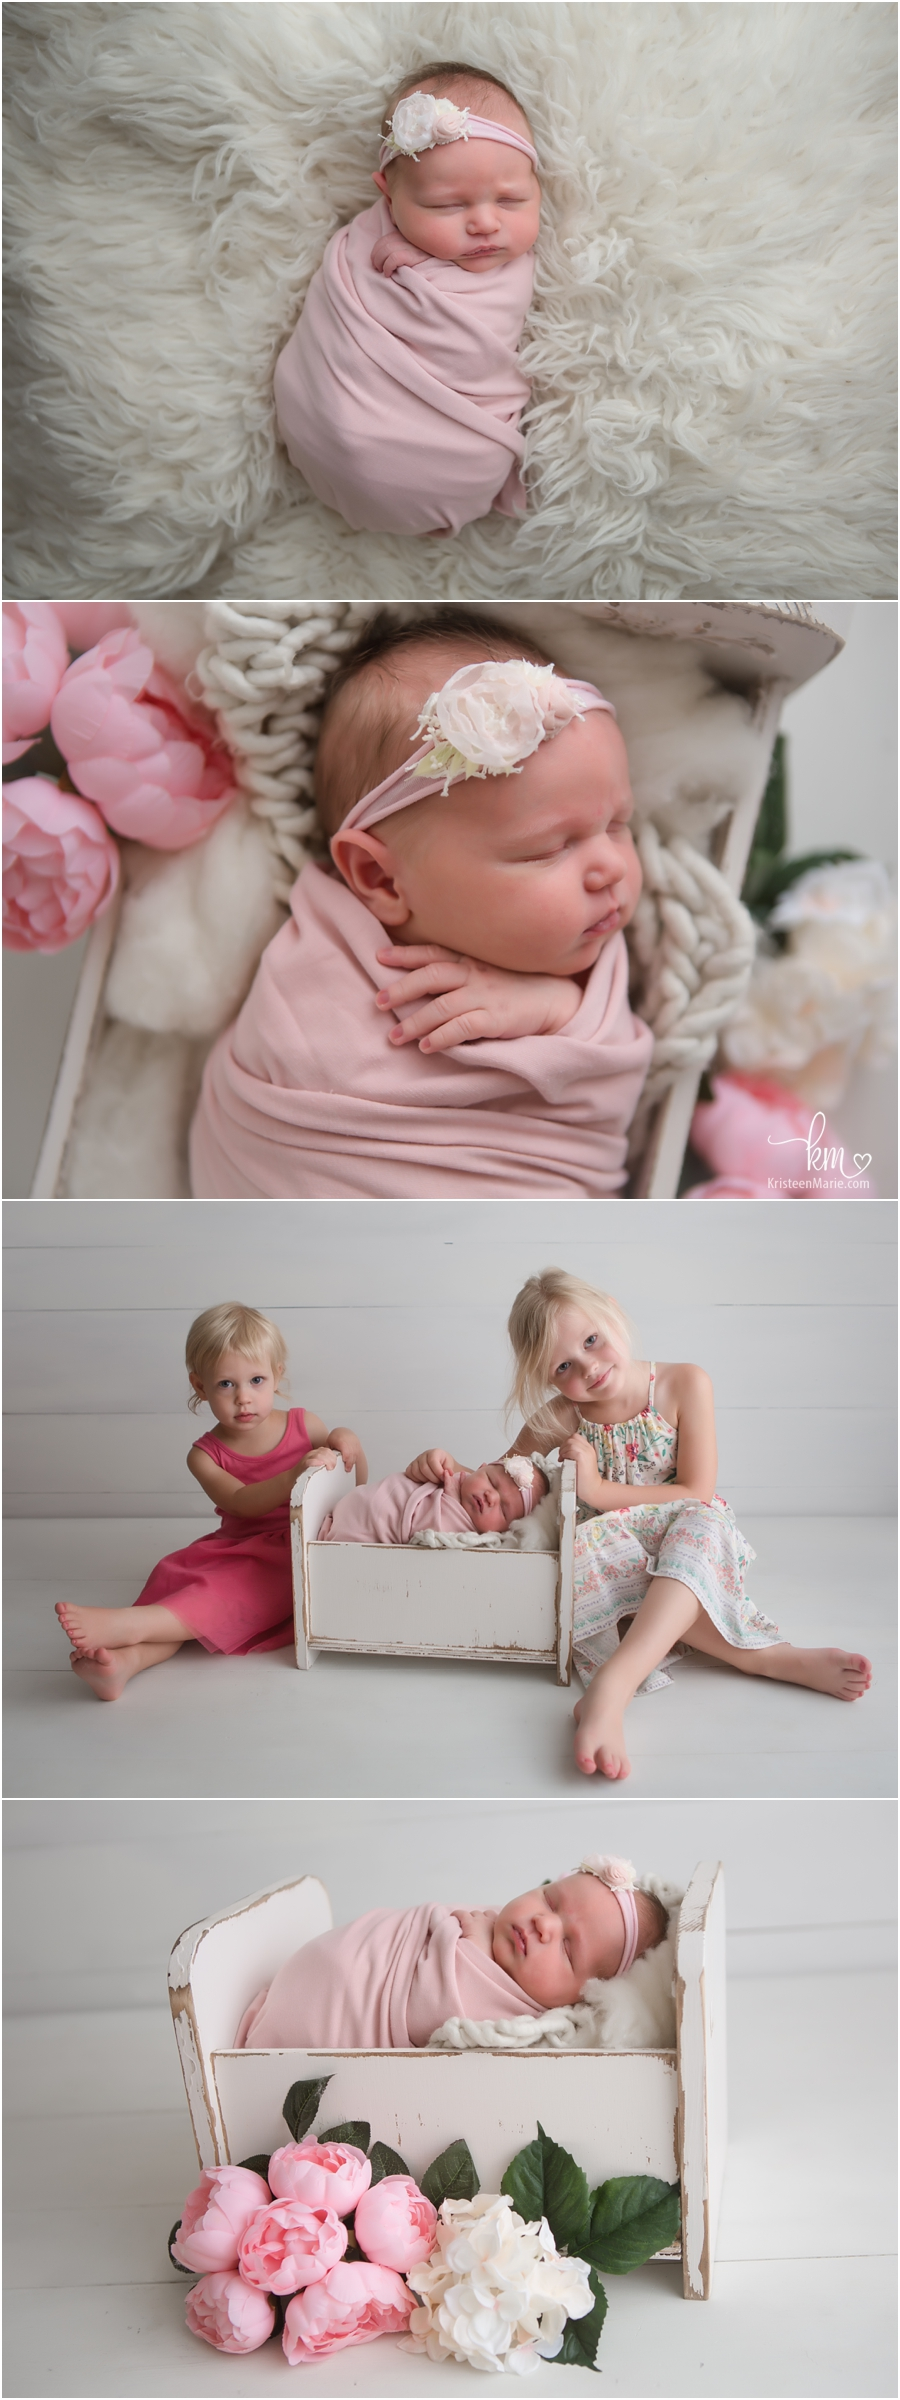 Newborn photography in Indianapolis, IN - siblings and newborn baby in studio